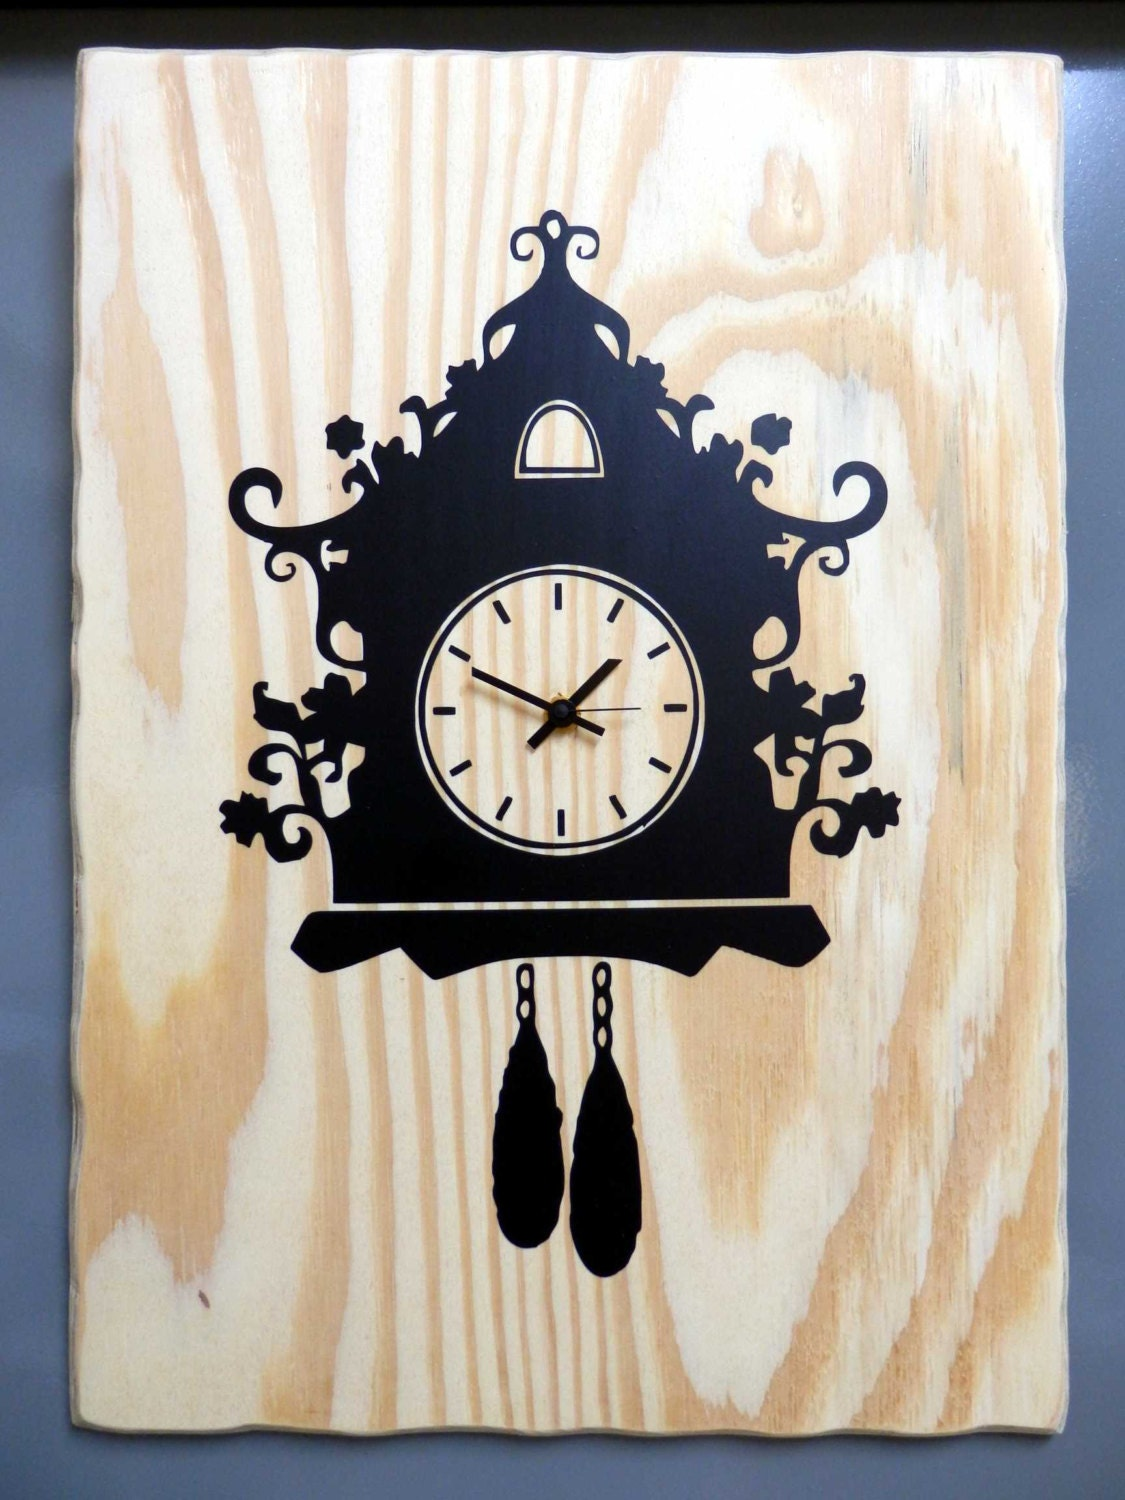 Cuckoo Clock Modern Wooden Wall Clock Unique Design